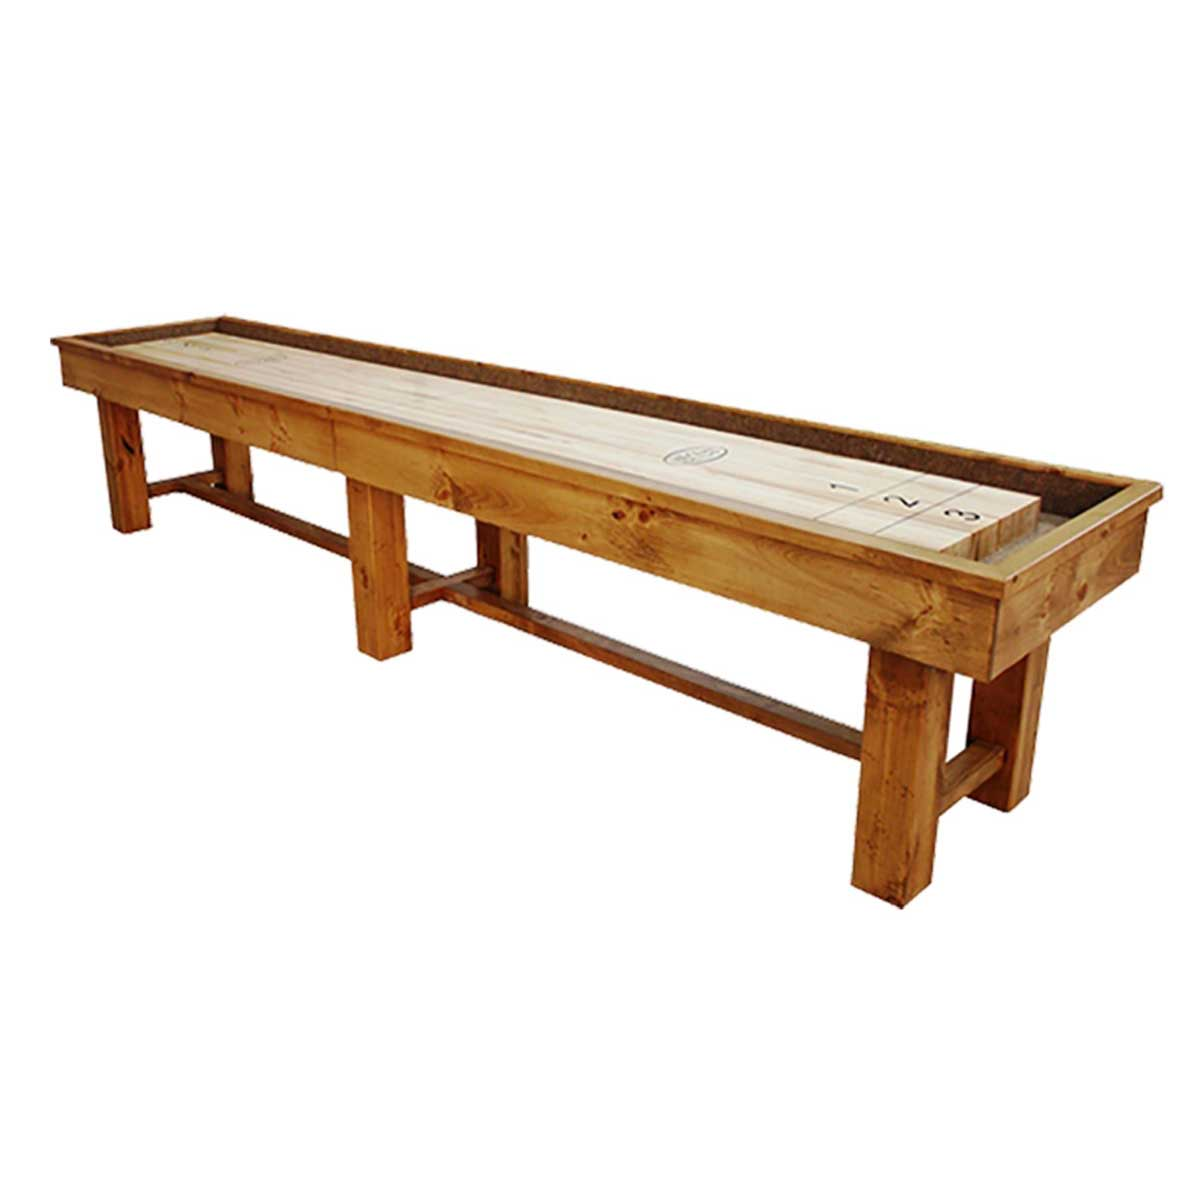 18 Foot Ponderosa Pine Shuffleboard Table